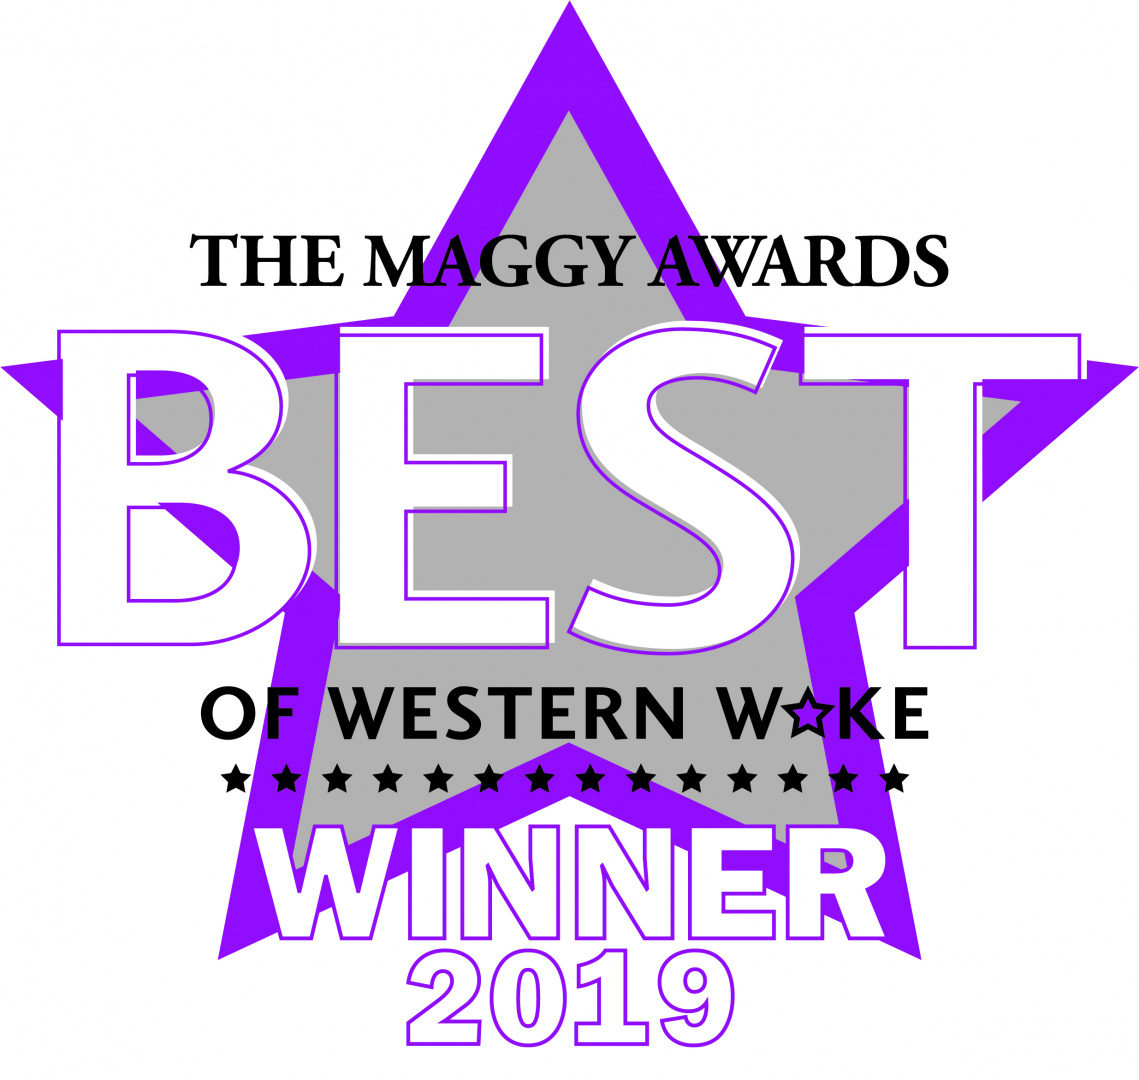 Triangle Wine Company winner 2019 Best of Western Wake Cary Magazine Maggy Award Best Wine Store